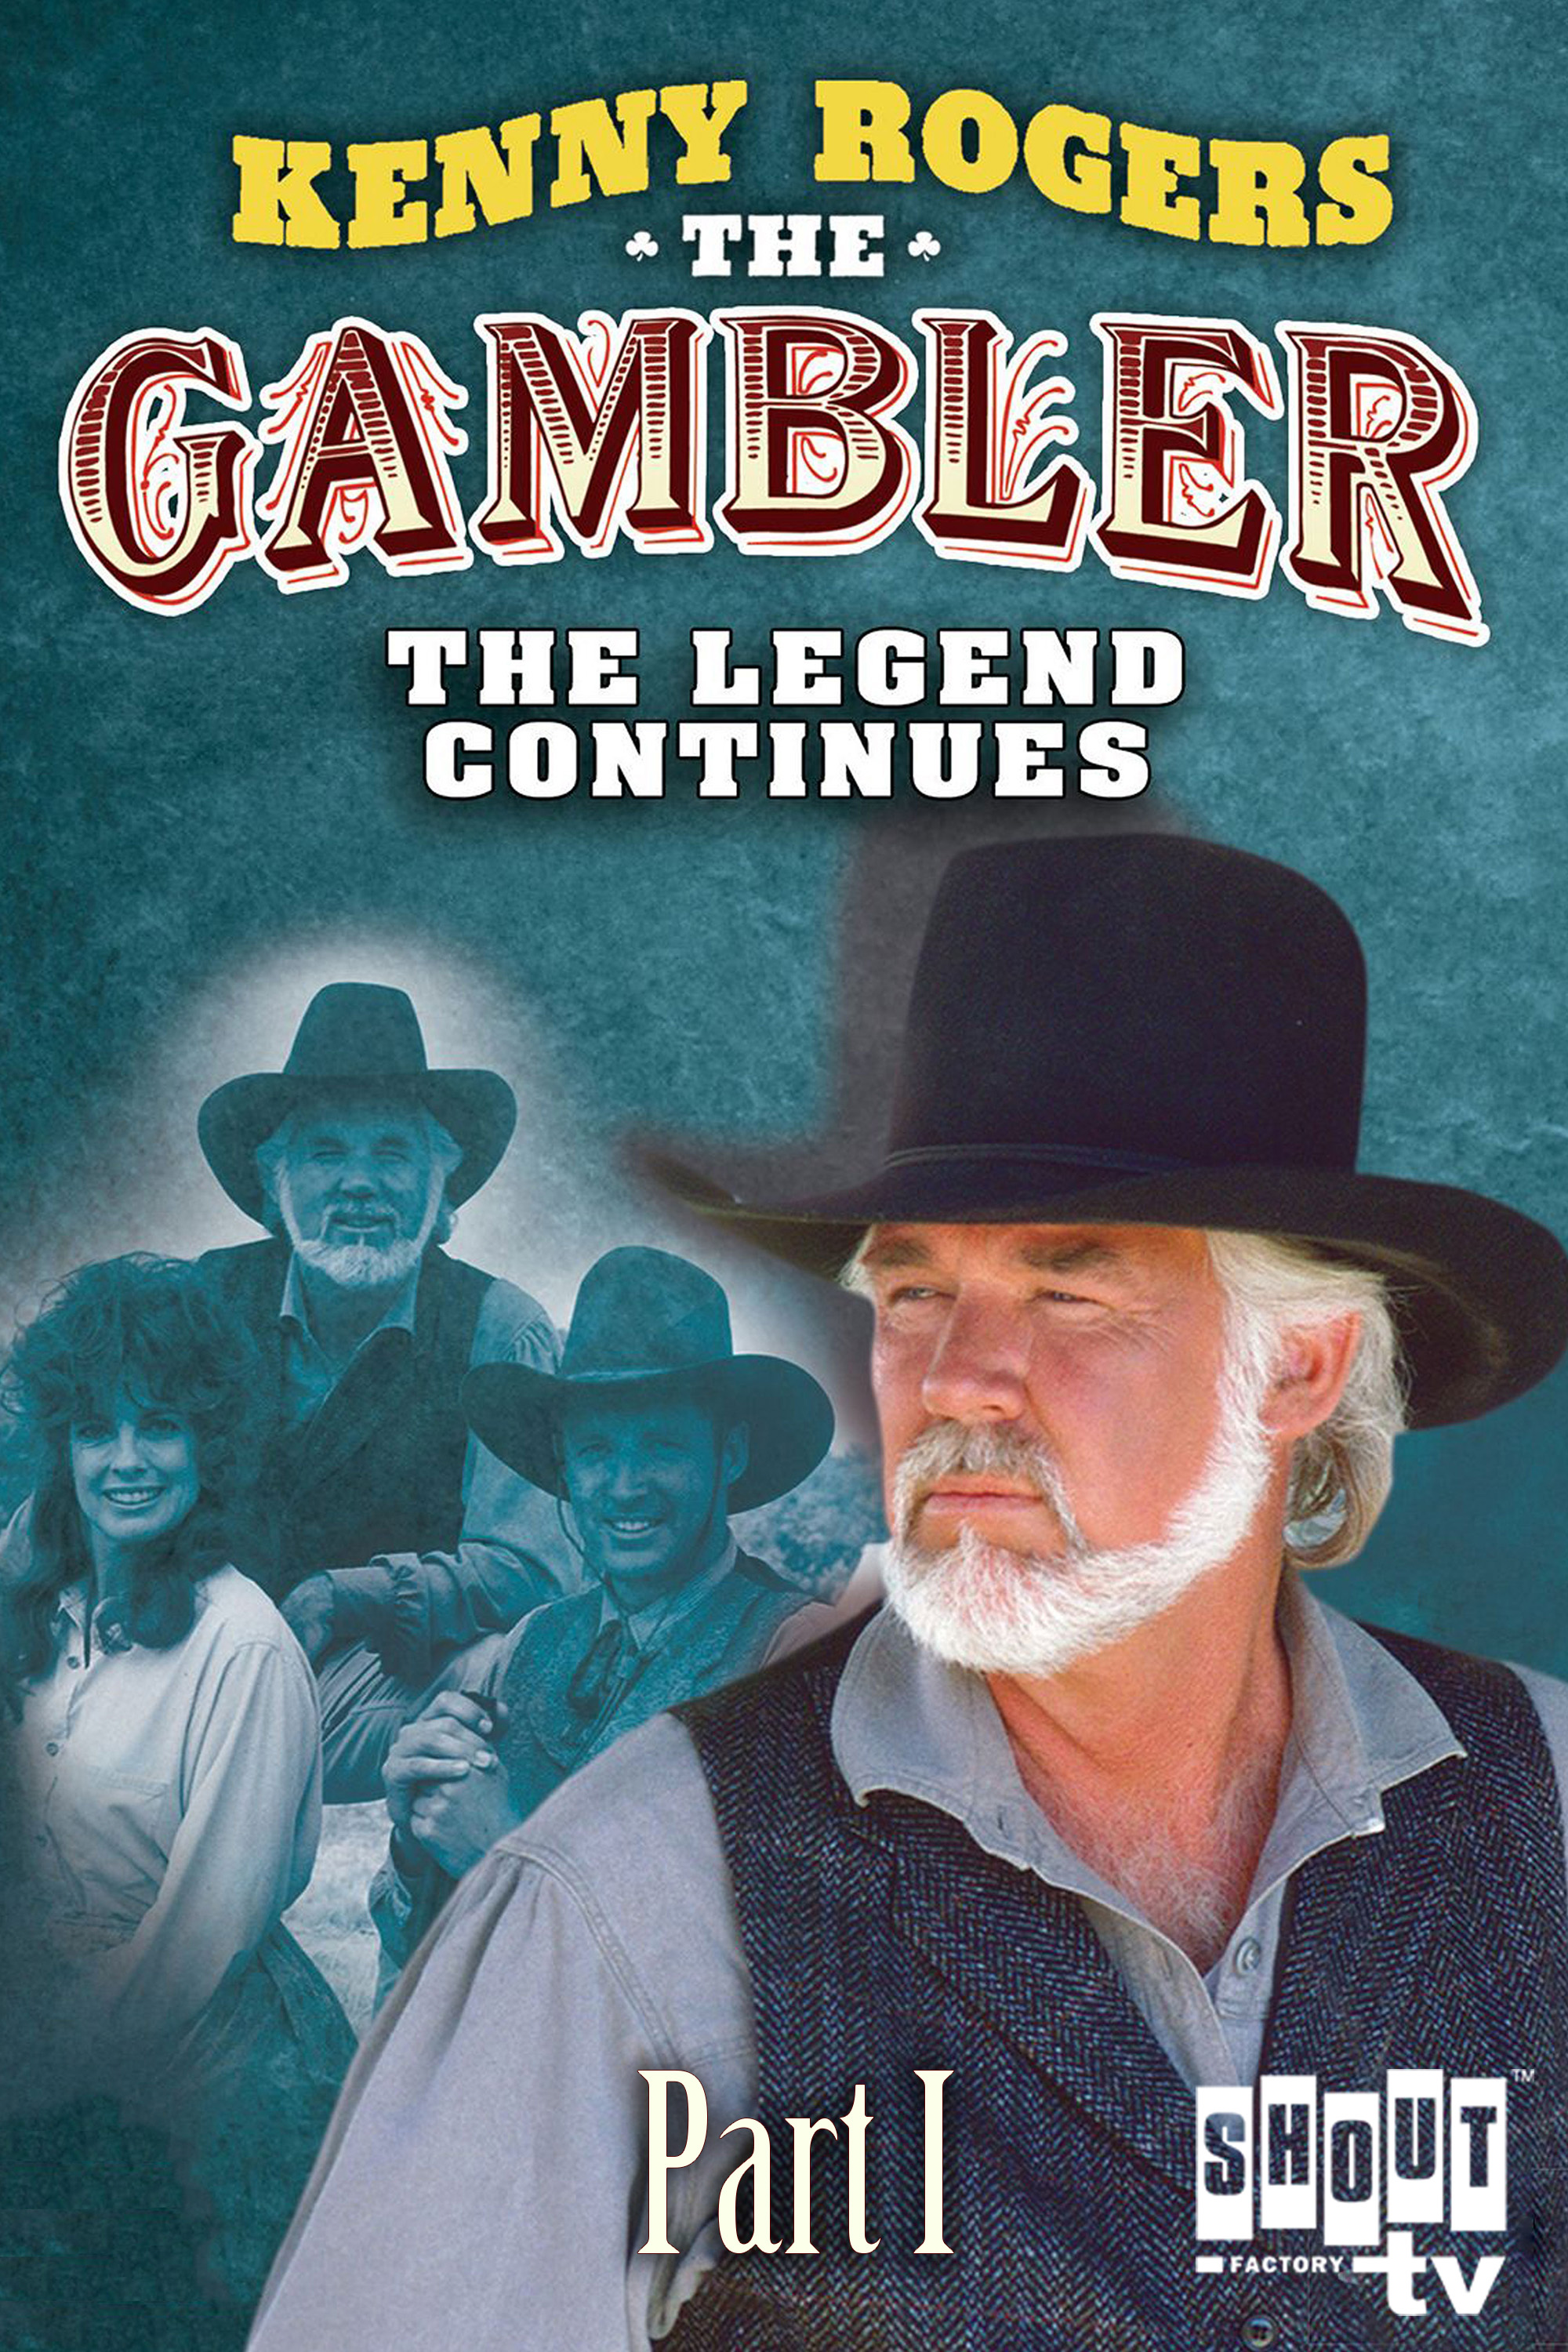 Kenny Rogers as The Gambler Part III: The Legend Continues (Part 1)